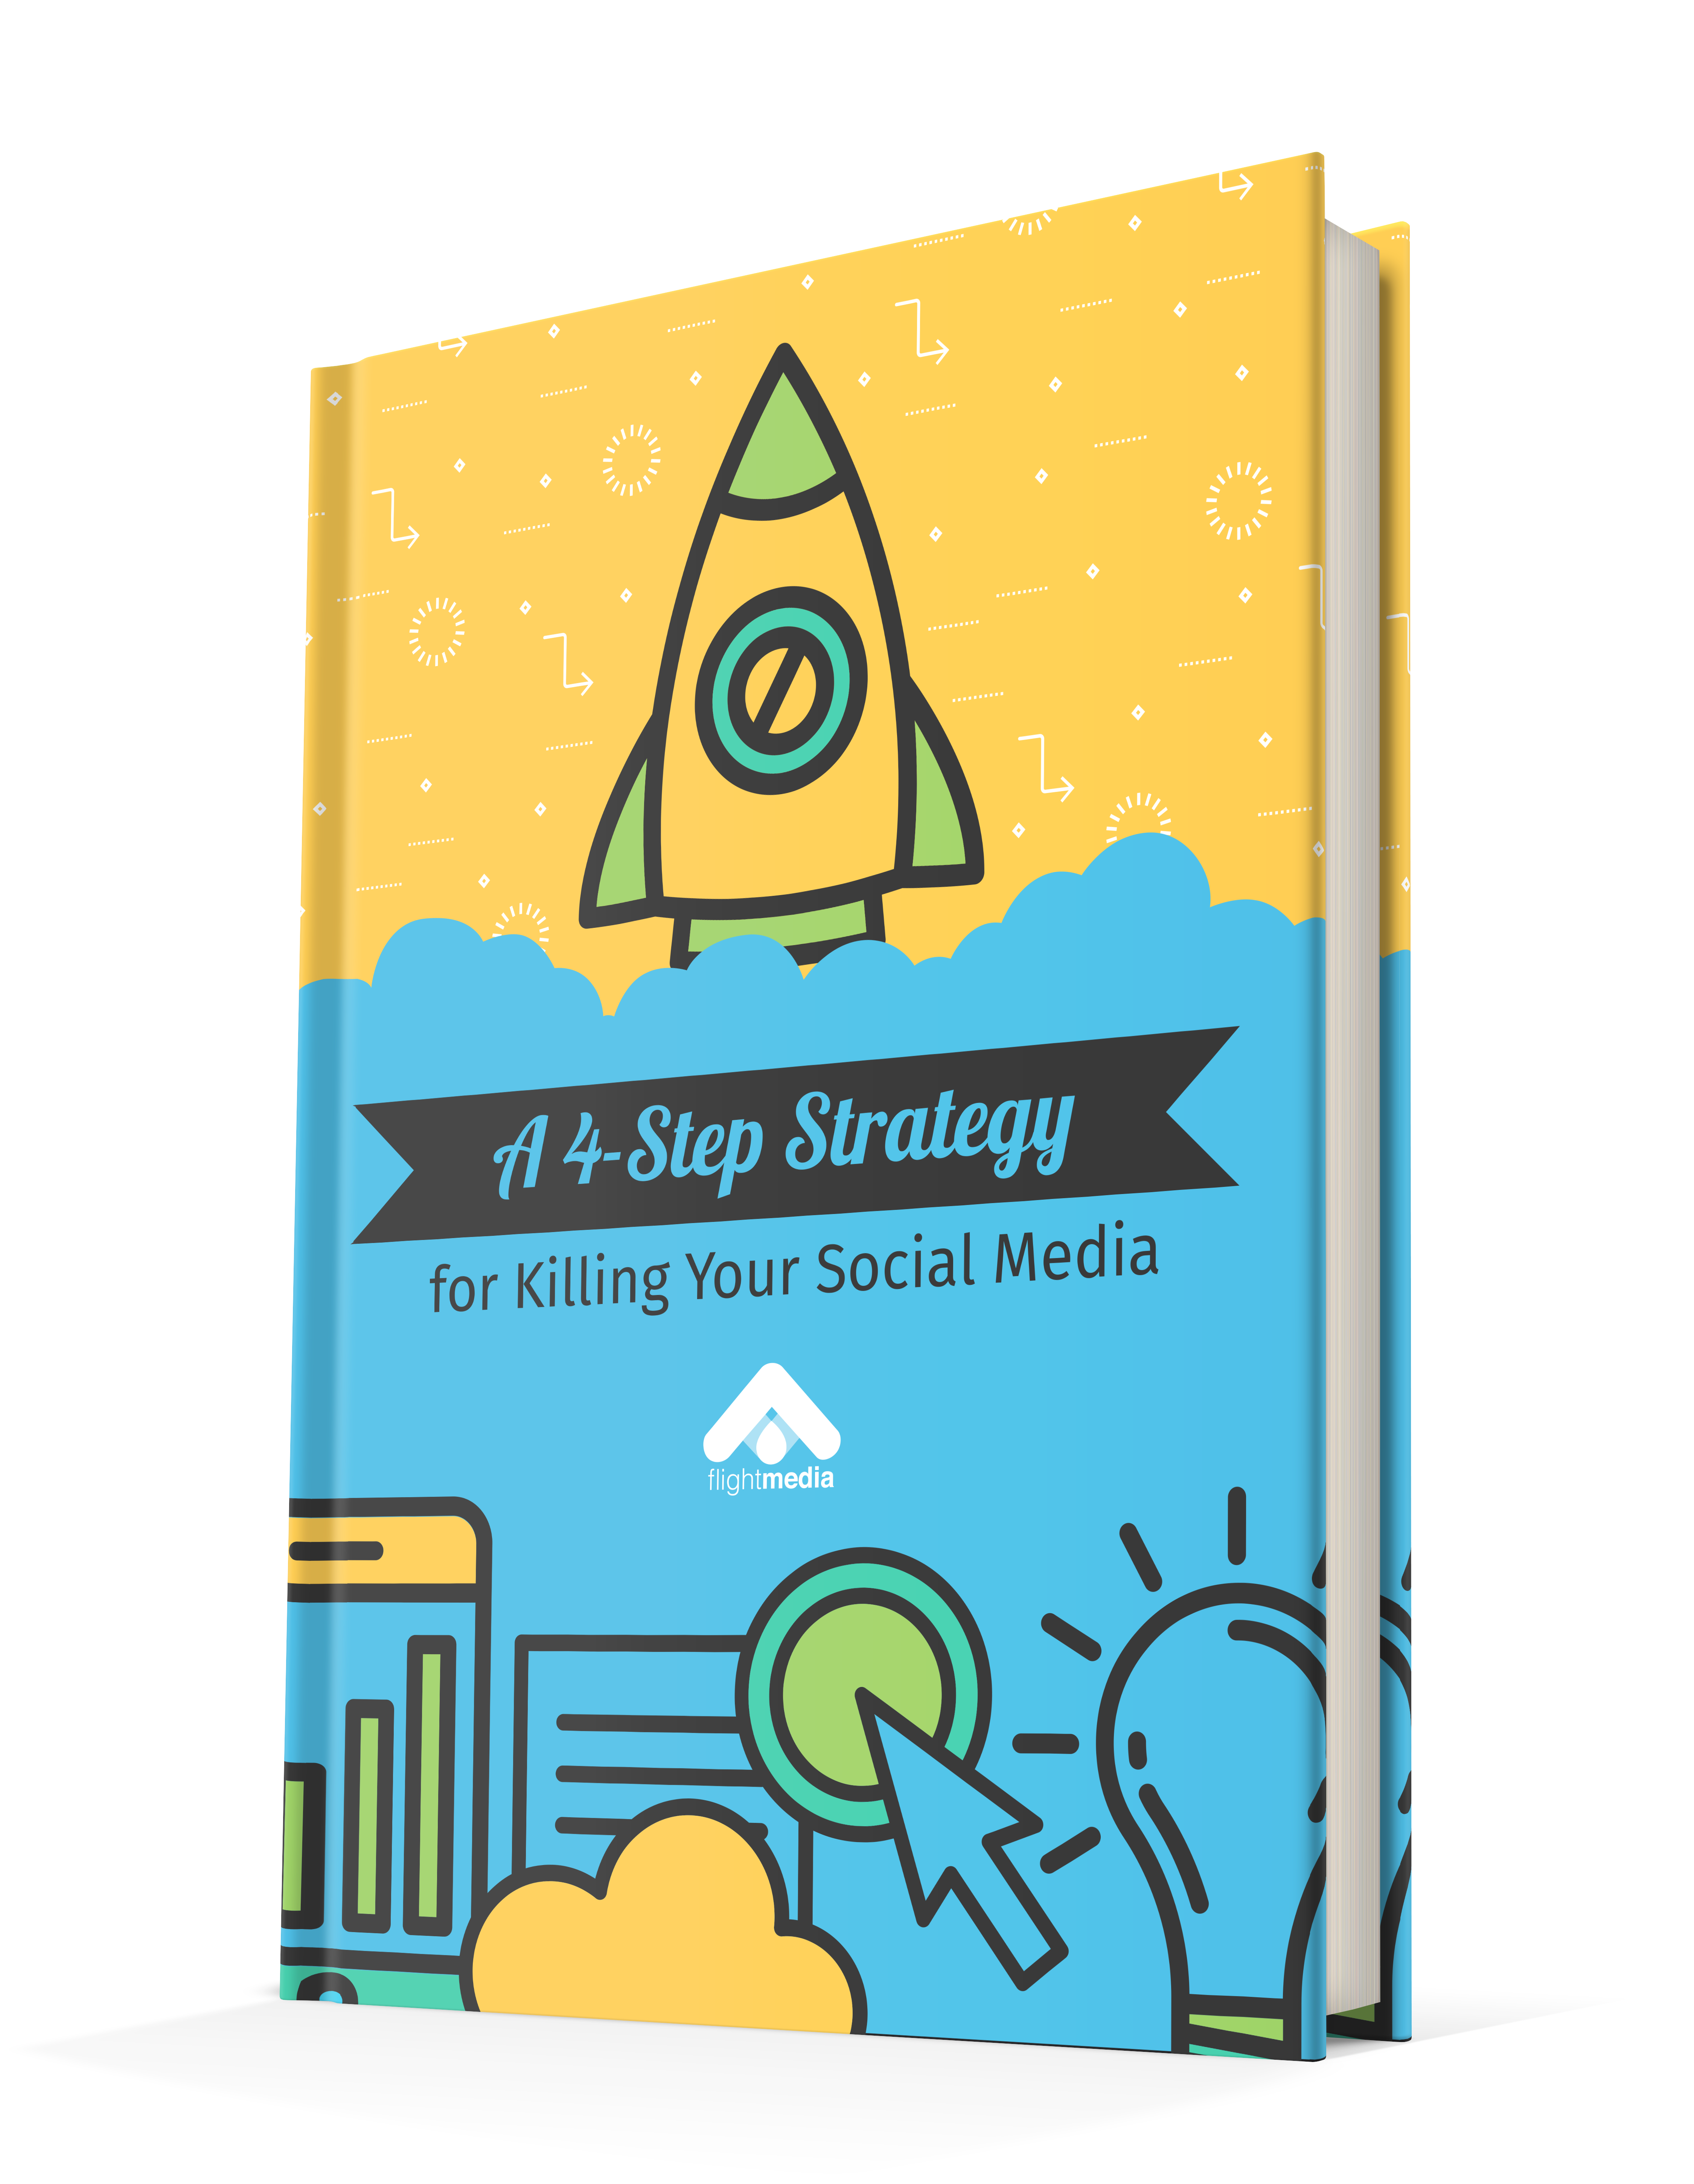 4-Step-Strategy-for-Killing-Your-Social-Media-eBook.png